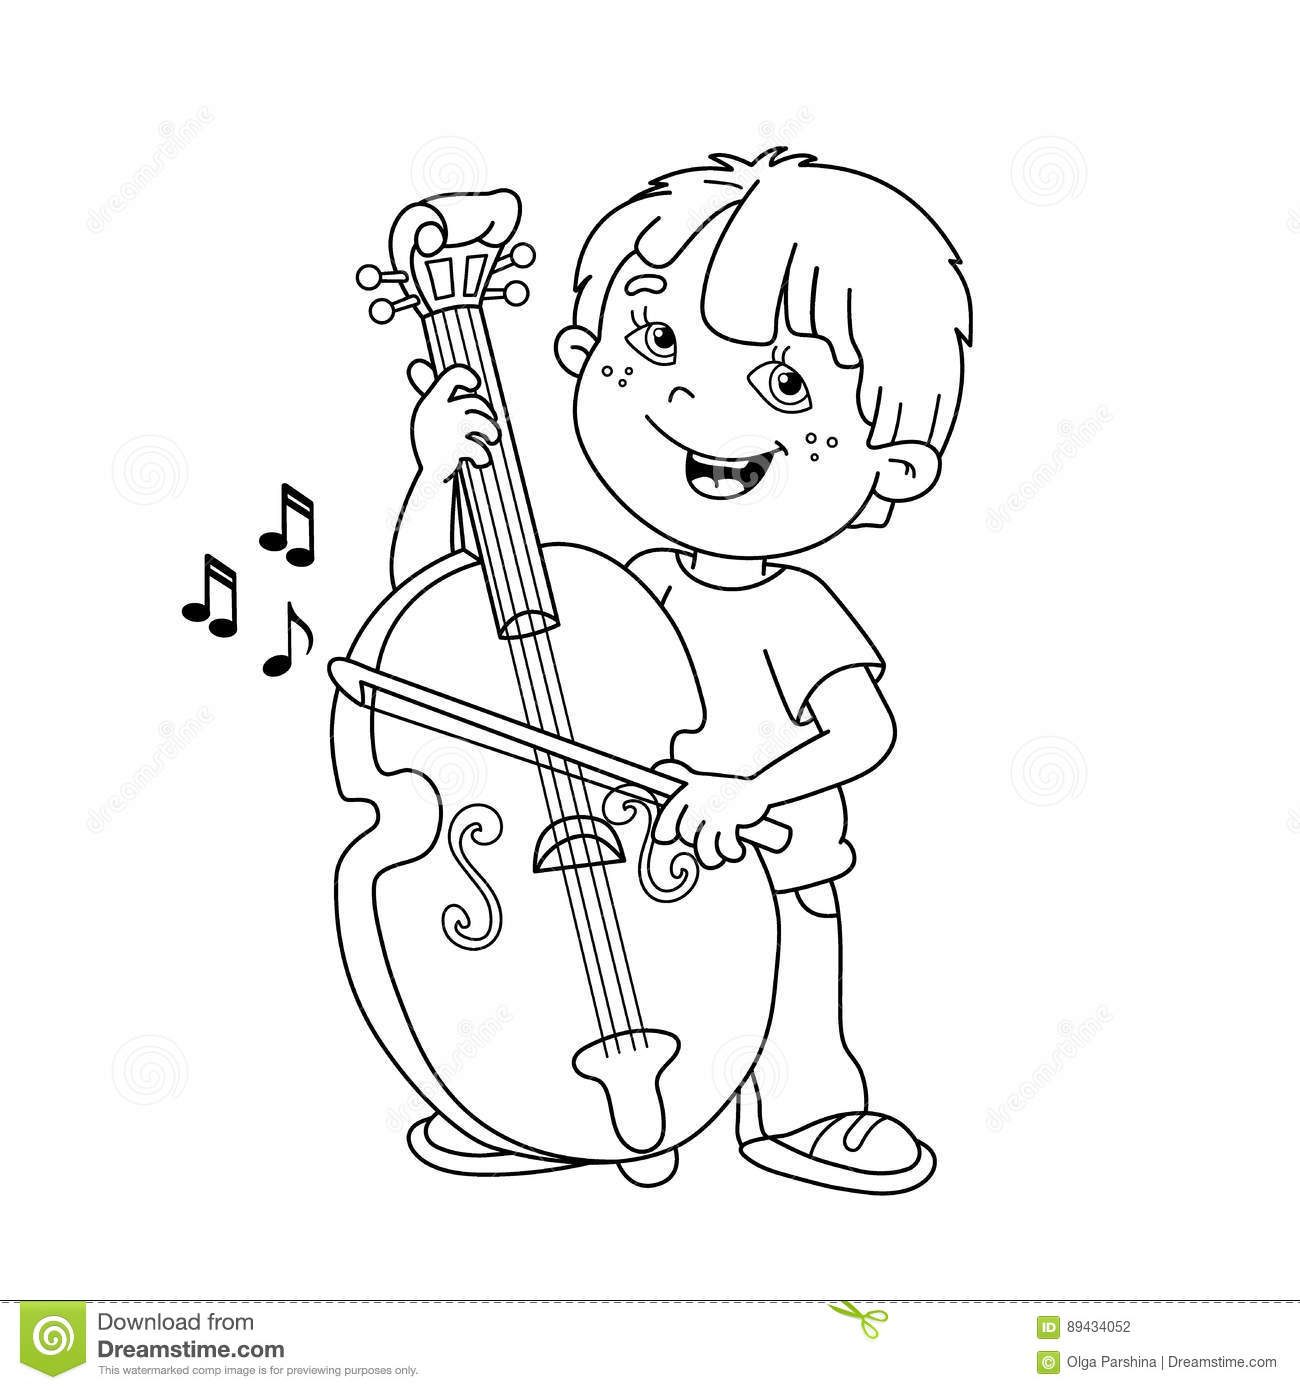 Coloring Page Outline Of Cartoon Boy Playing The Cello. Stock Vector ...